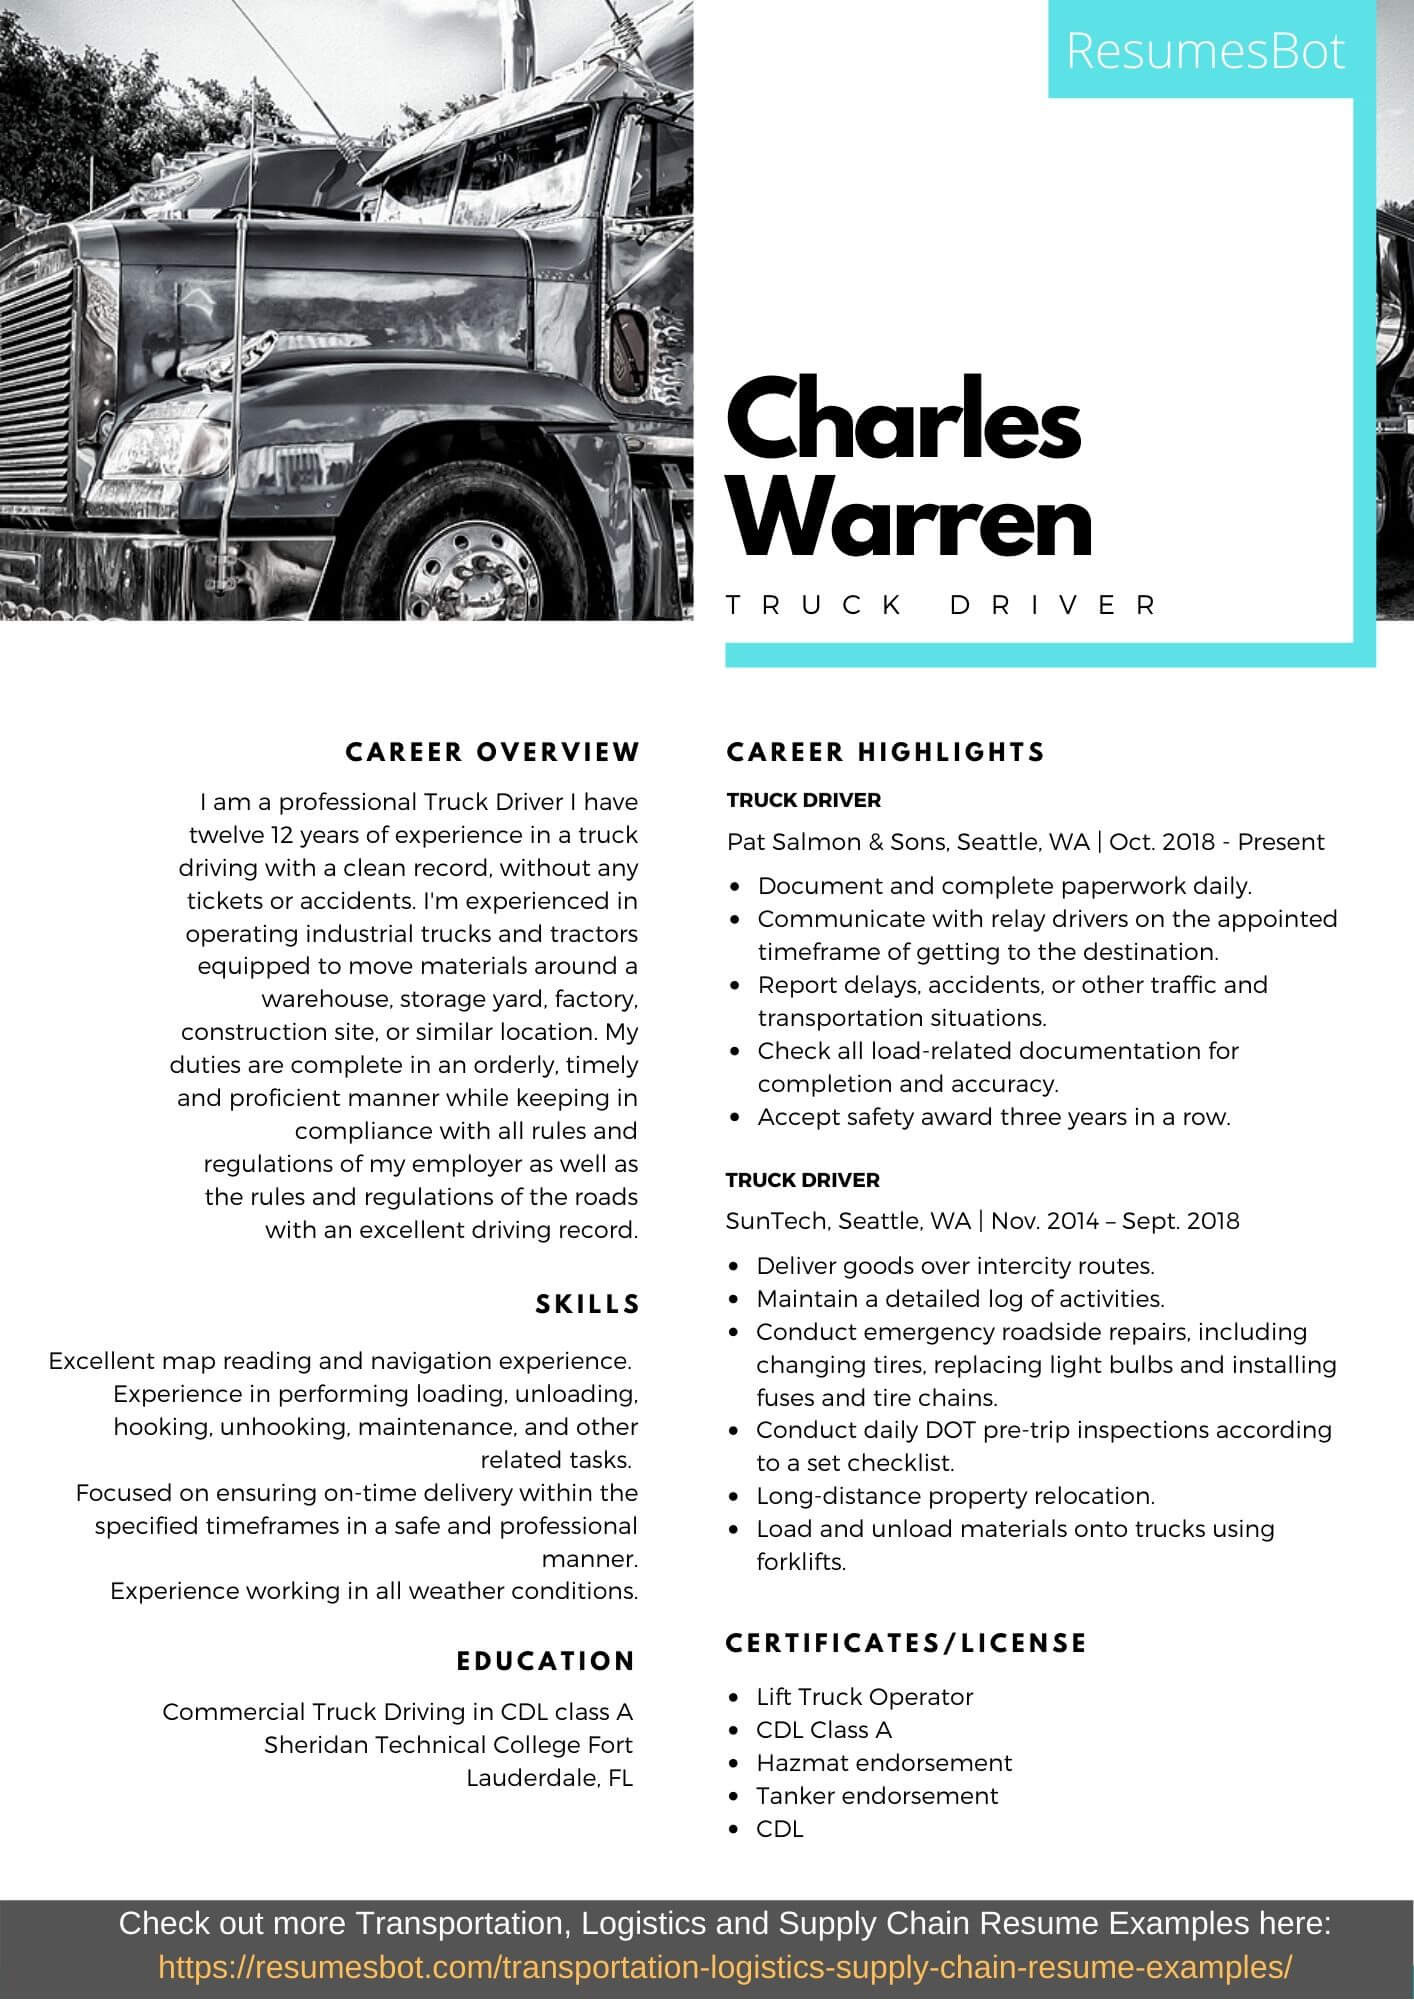 Cdl Class A Truck Driver Resume Sample Truck Driver Resume Samples and Tips [pdflancarrezekiqdoc] Resumes Bot